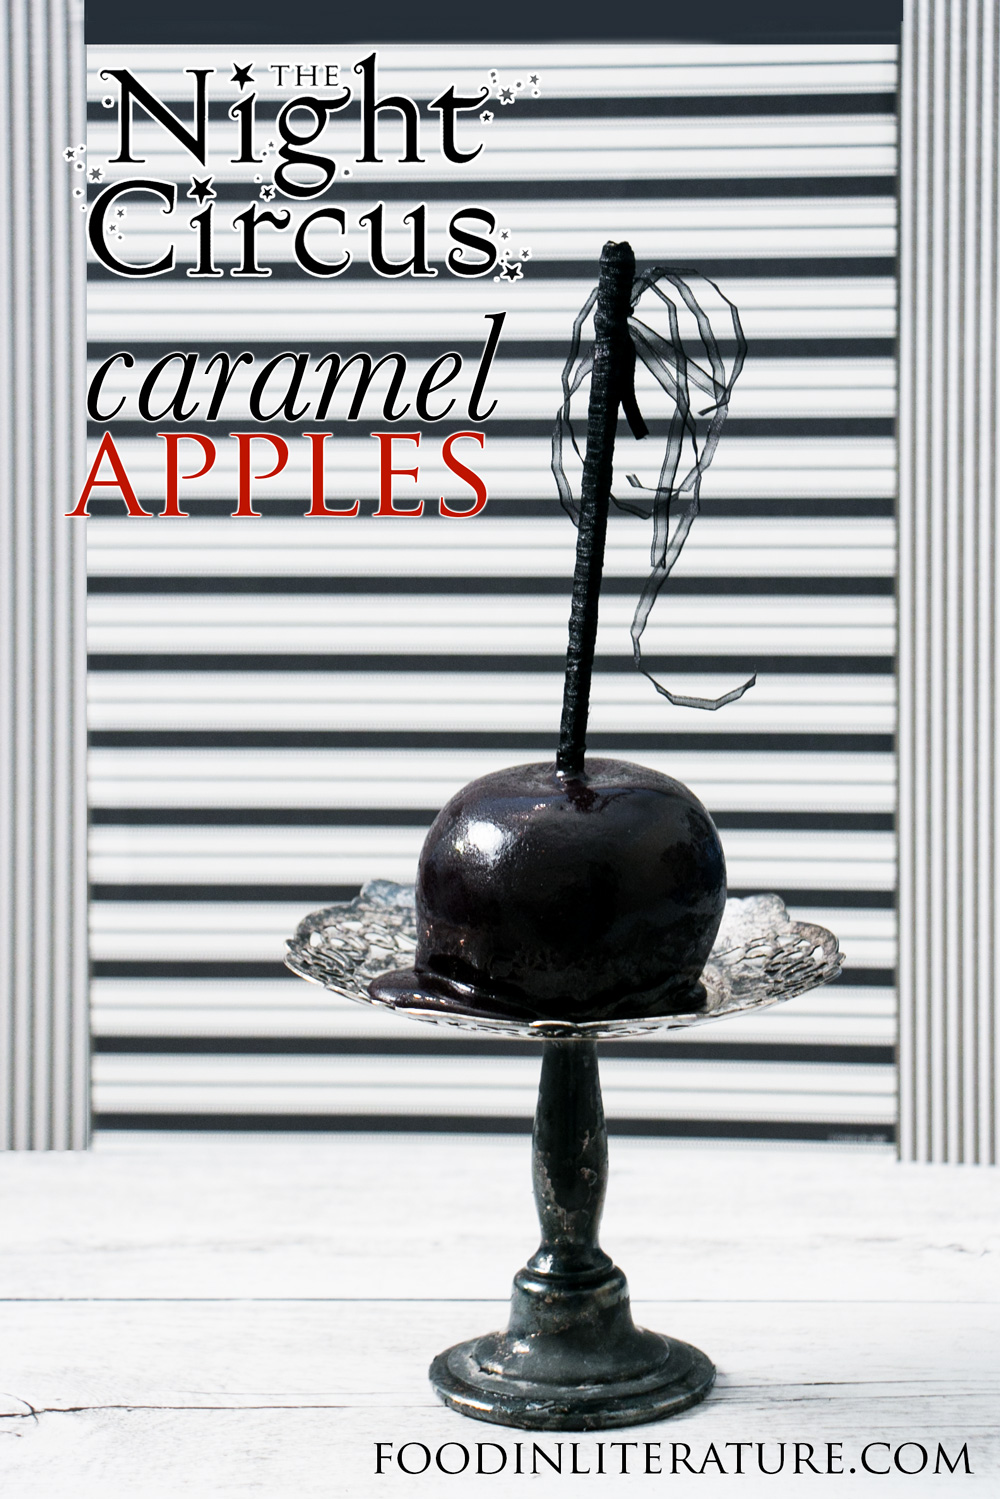 This midnight black caramel apple is the perfect Halloween treat, inspired by the magical book, The Night Circus.